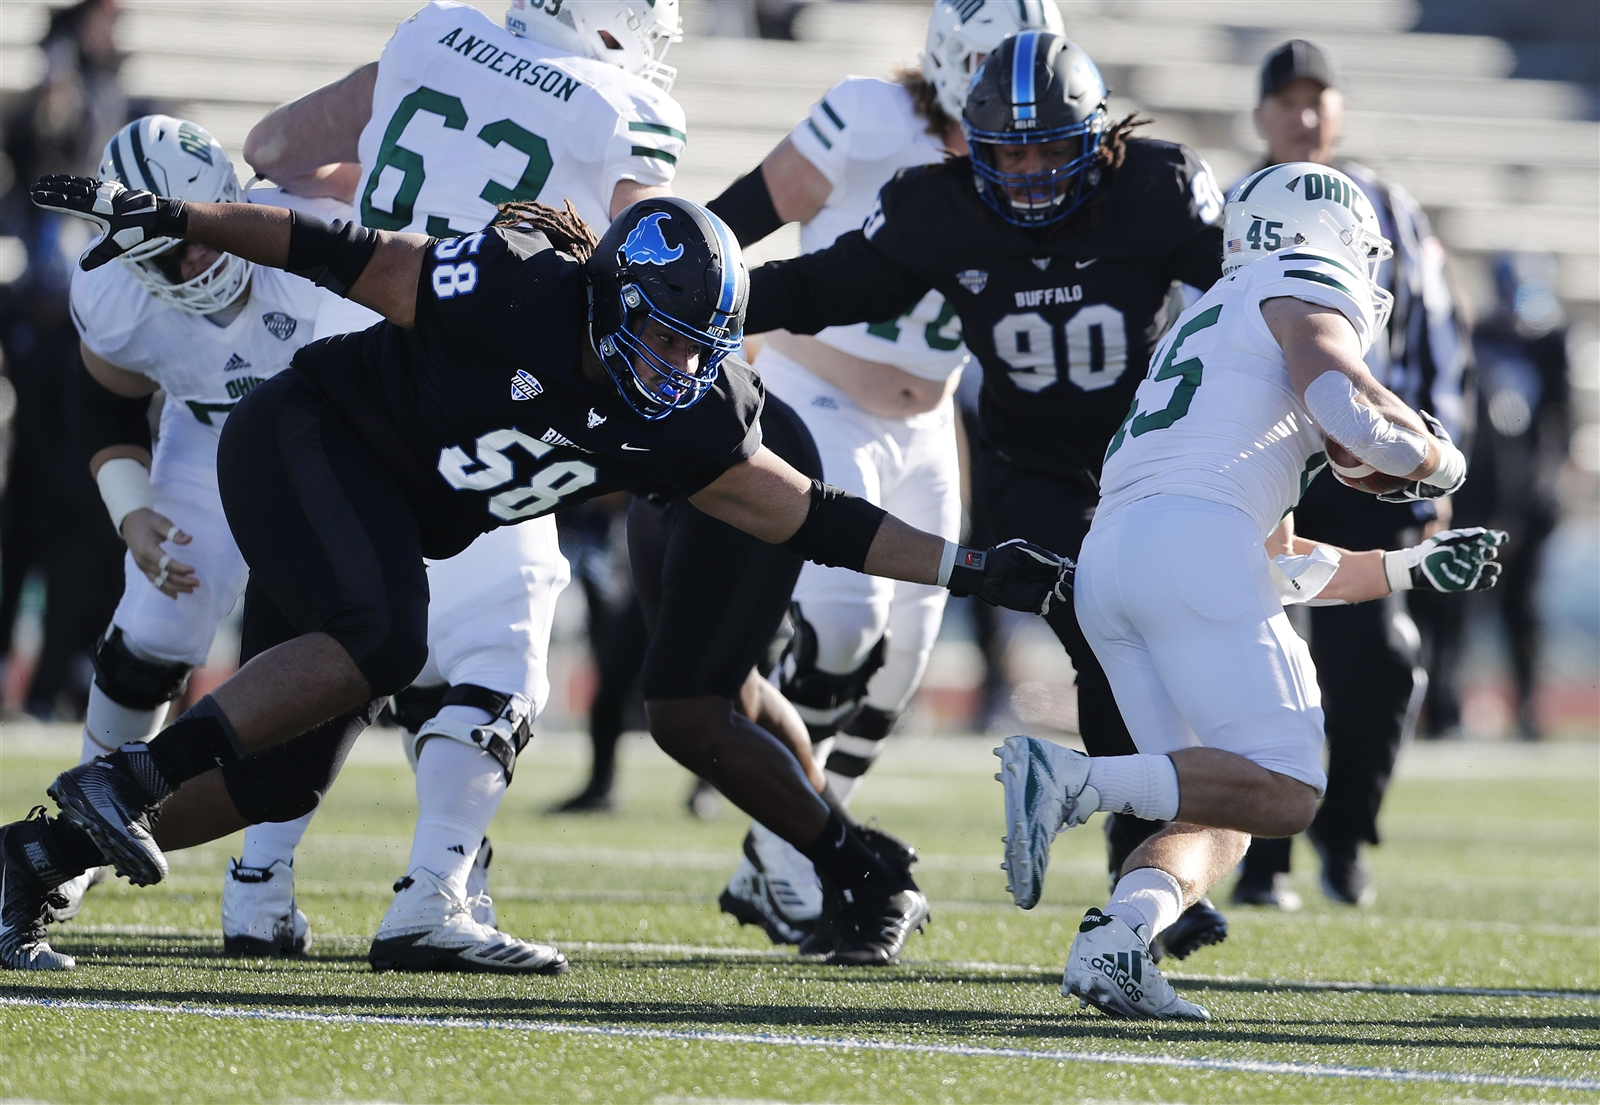 UB (58) Chris Ford tries to slow Ohio (45) A.J. Ouellette in the first half.